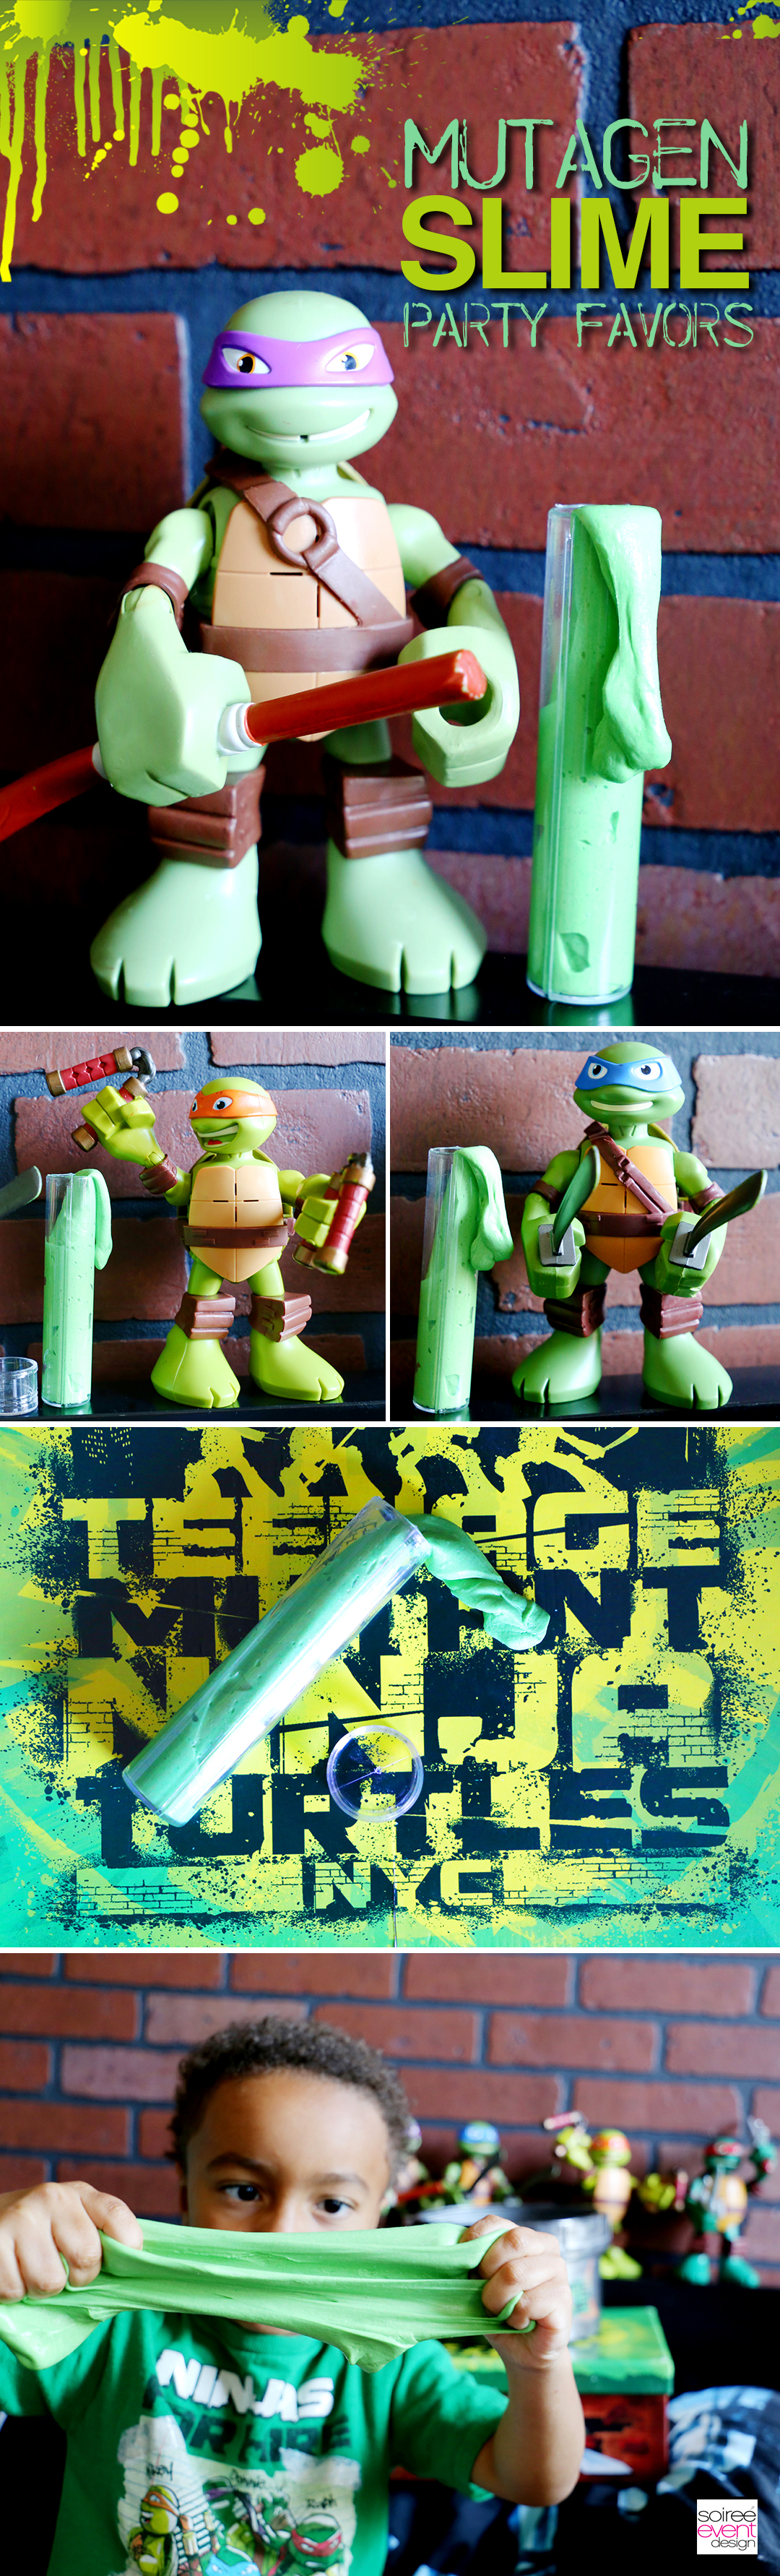 Teenage Mutant Ninja Turtles Mutagen Slime Party Favors